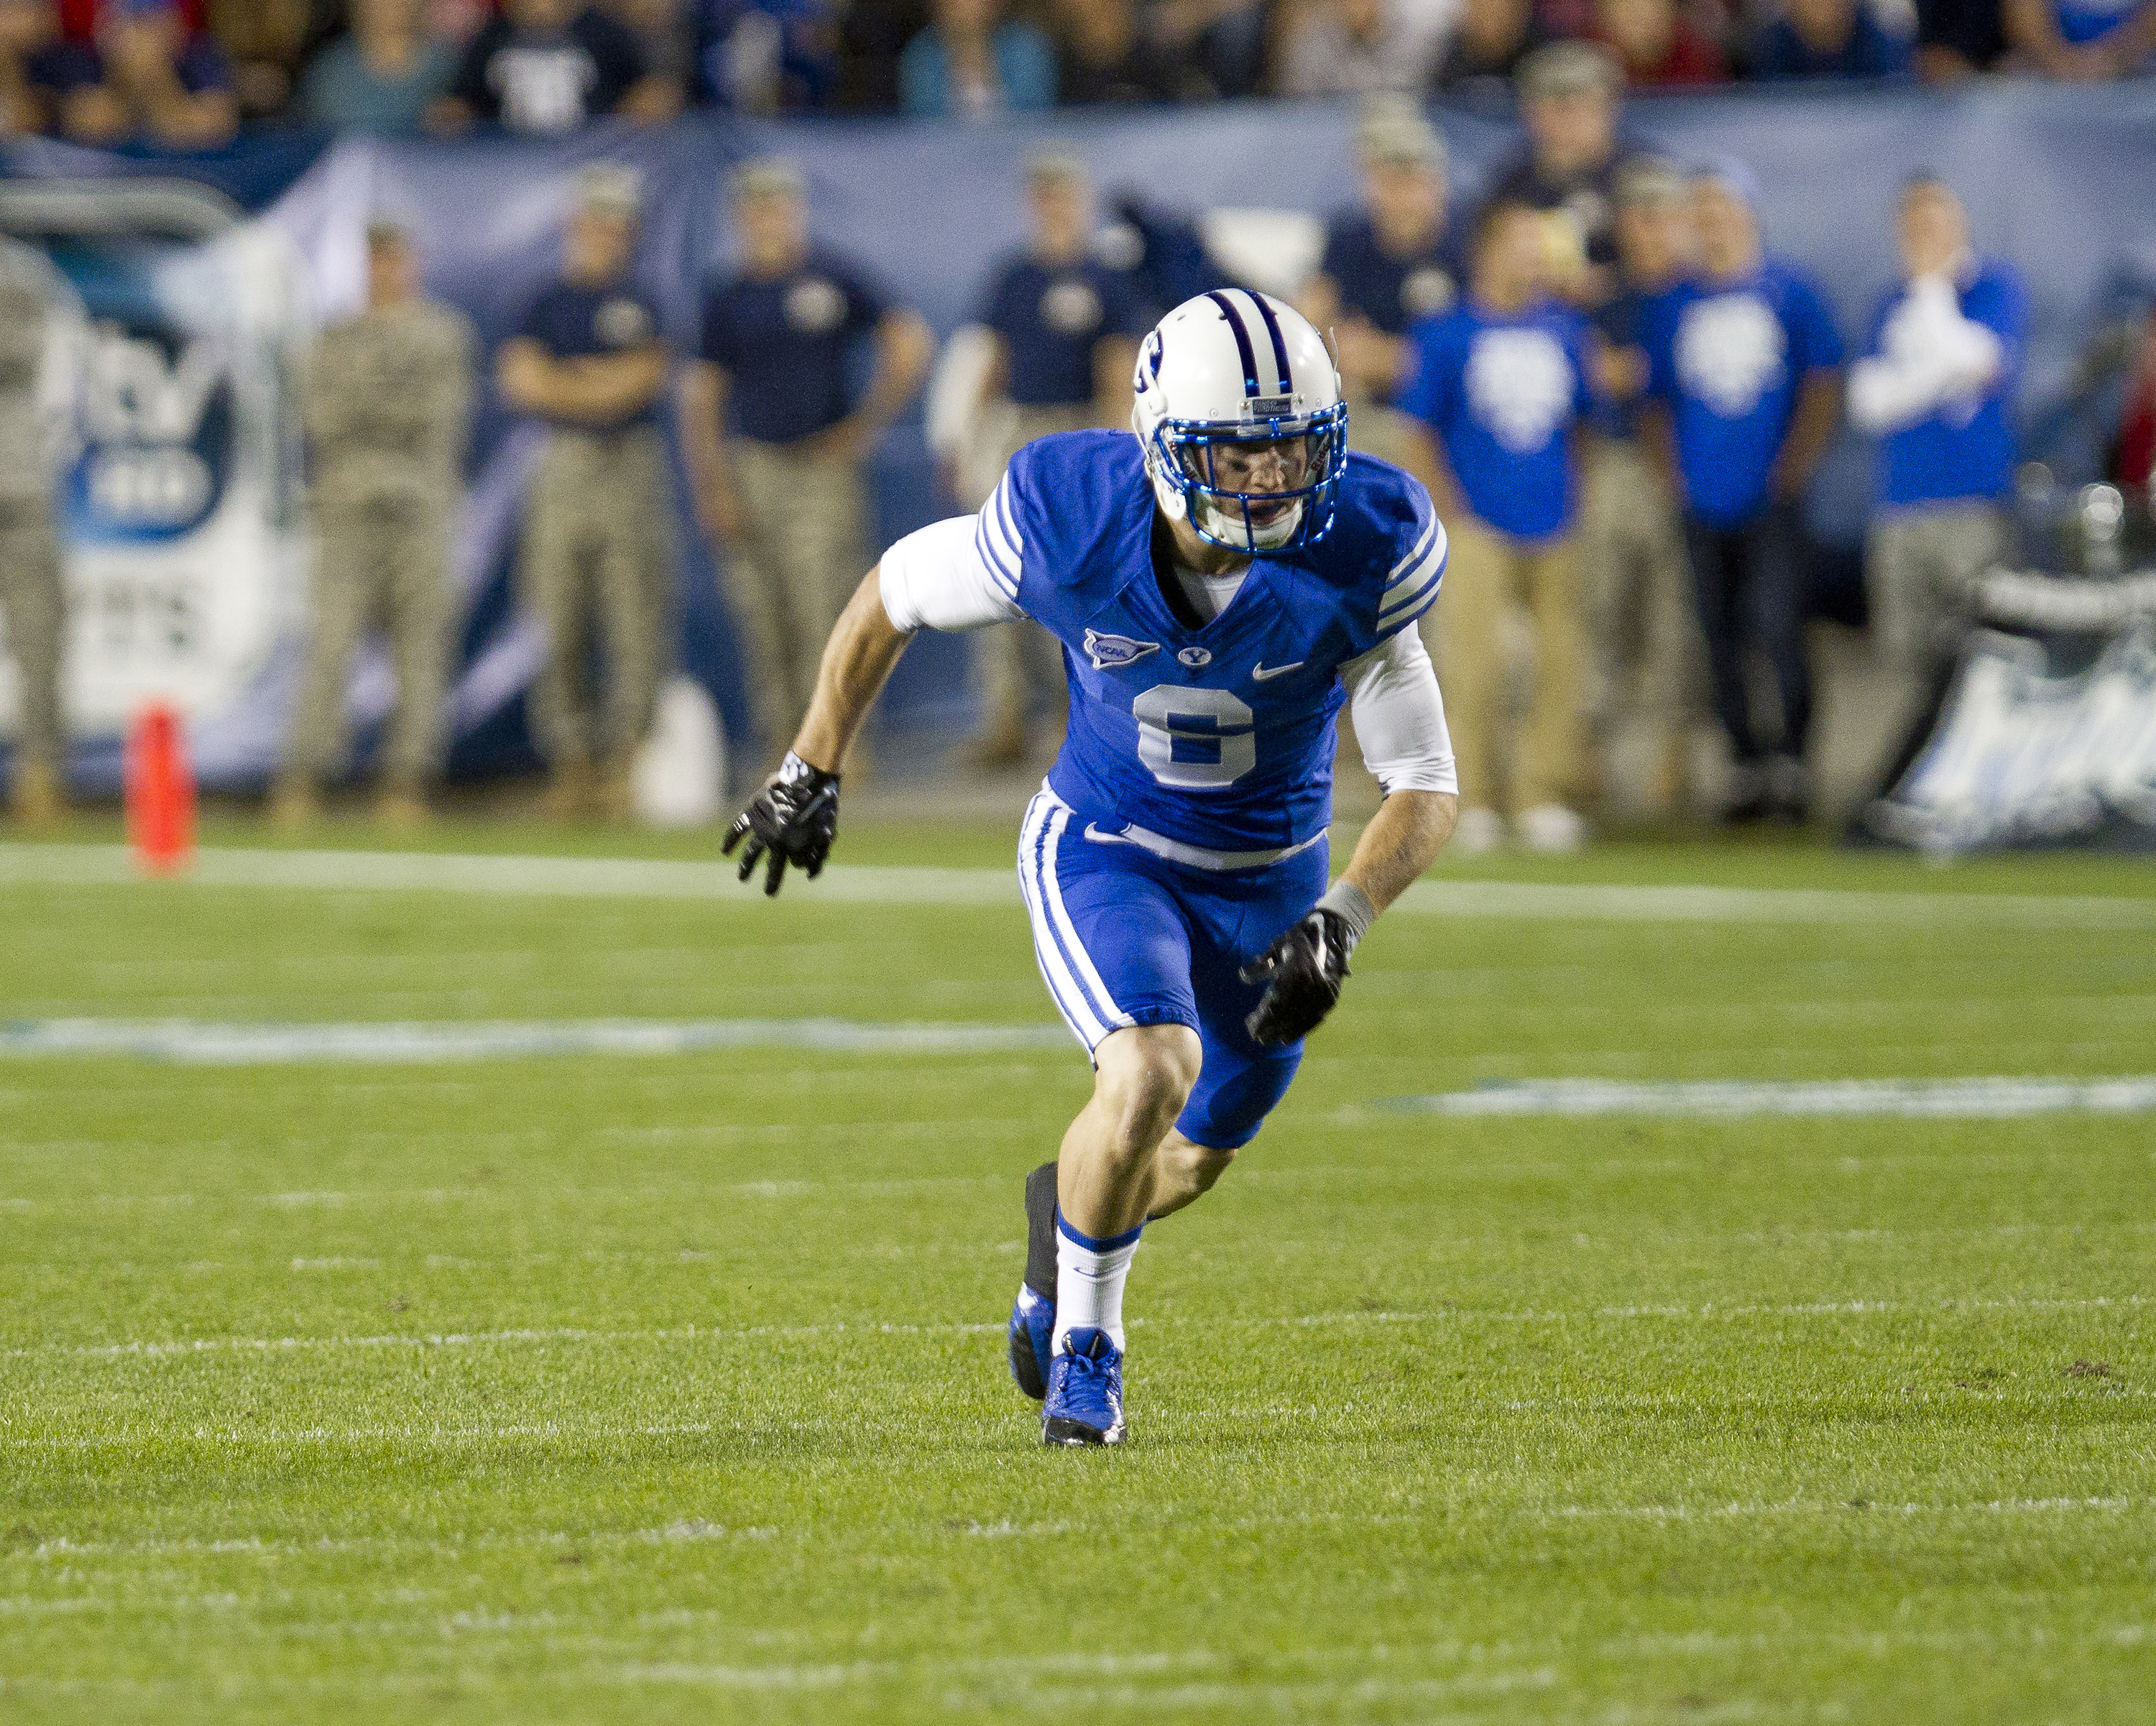 Eric Thornton, once an intramural standout, now plays wide receiver for the BYU football team. Photo by Sarah Hill.